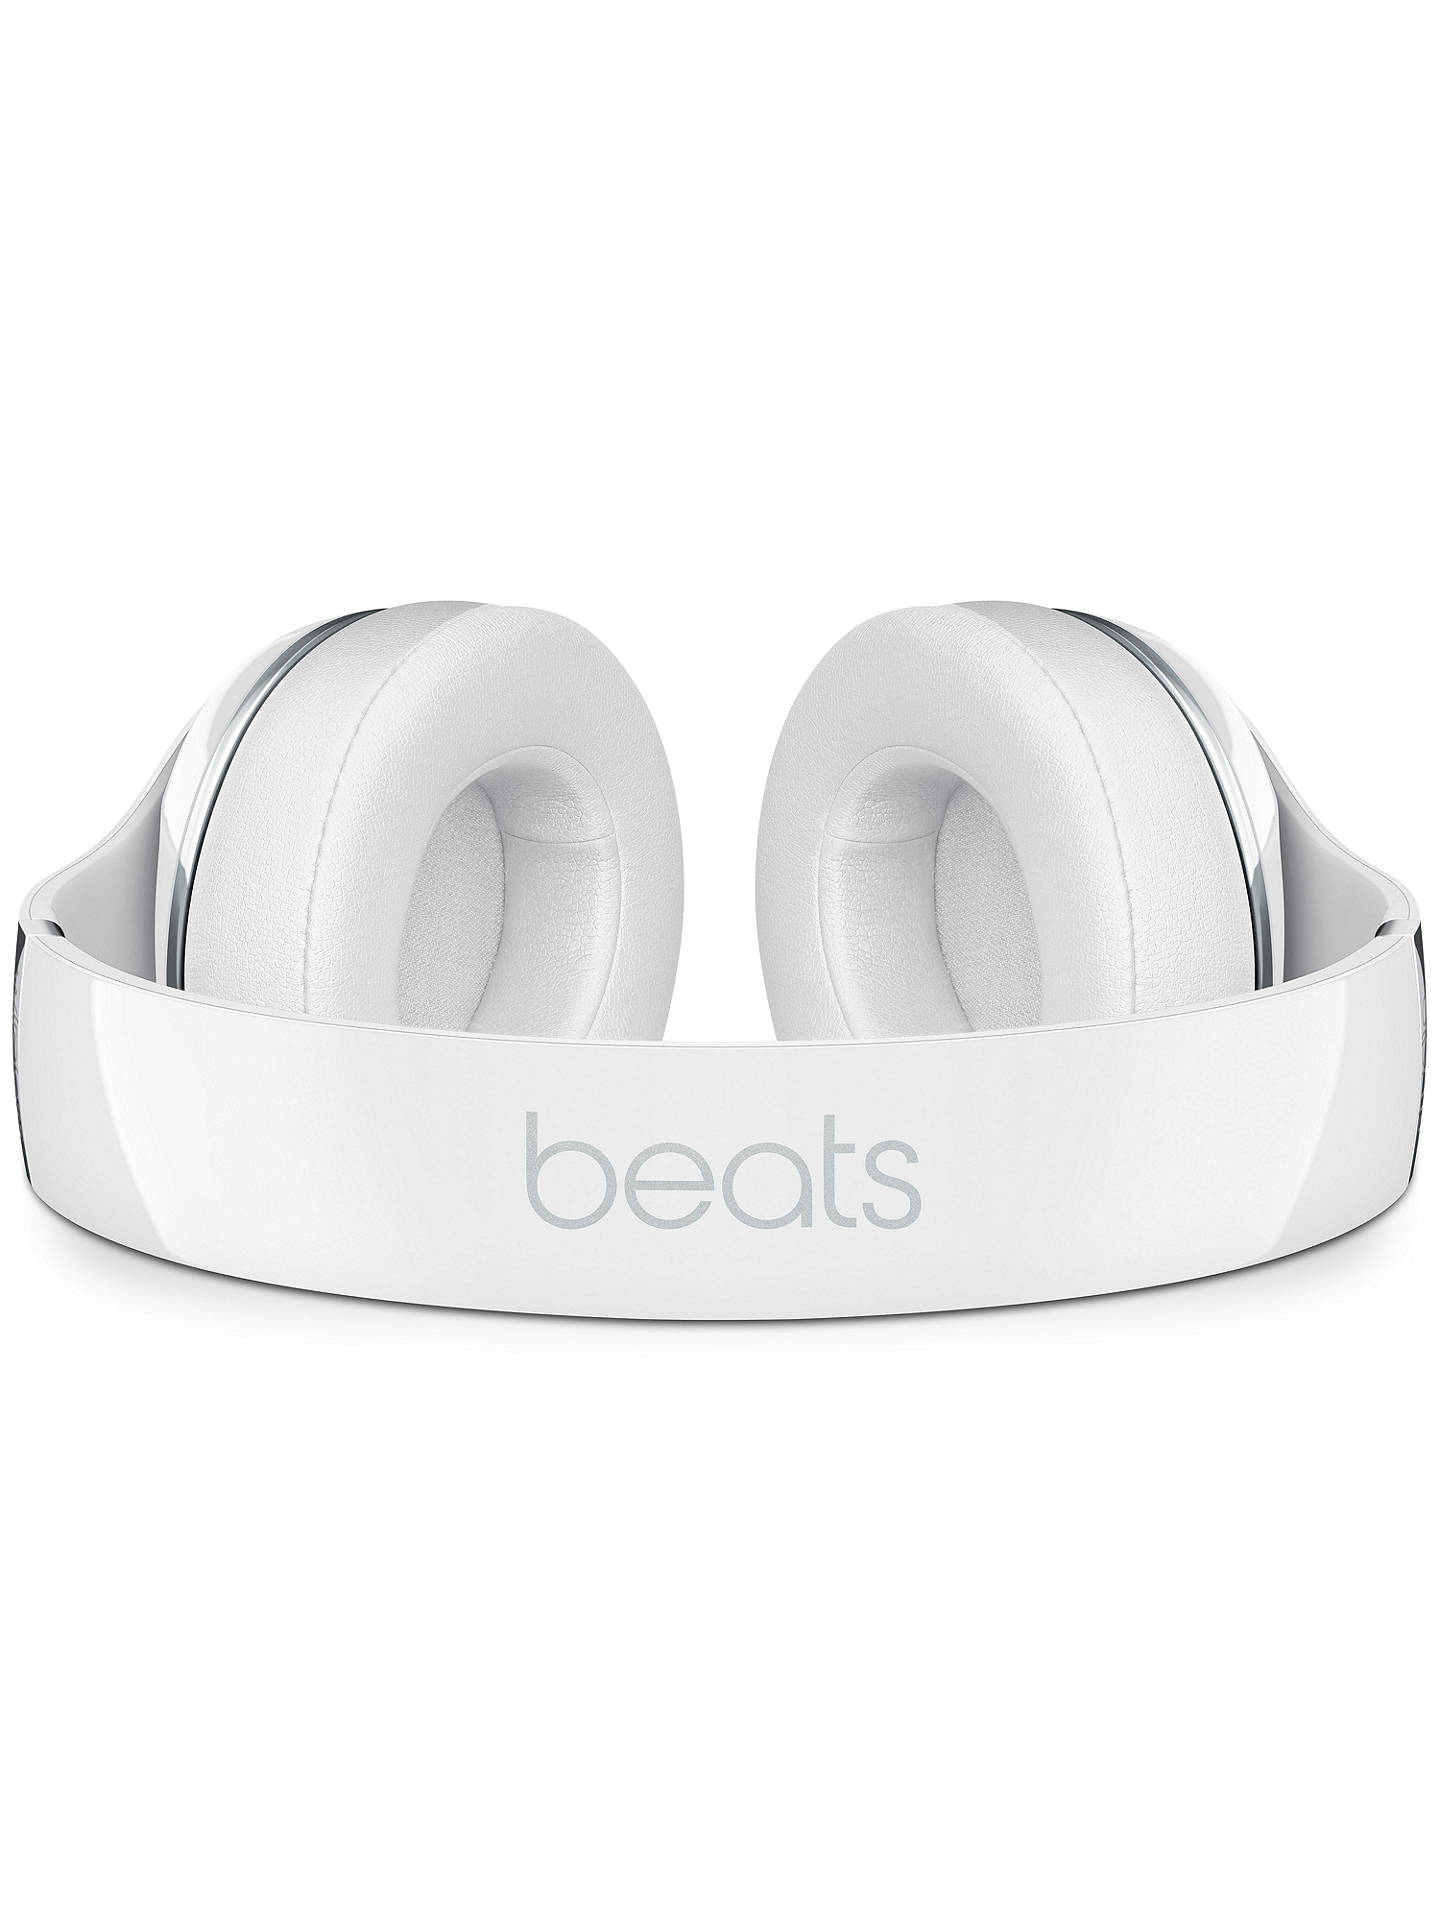 Buy Beats Studio Wireless Noise Cancelling Bluetooth Over-Ear Headphones with Mic/Remote, Gloss White Online at johnlewis.com